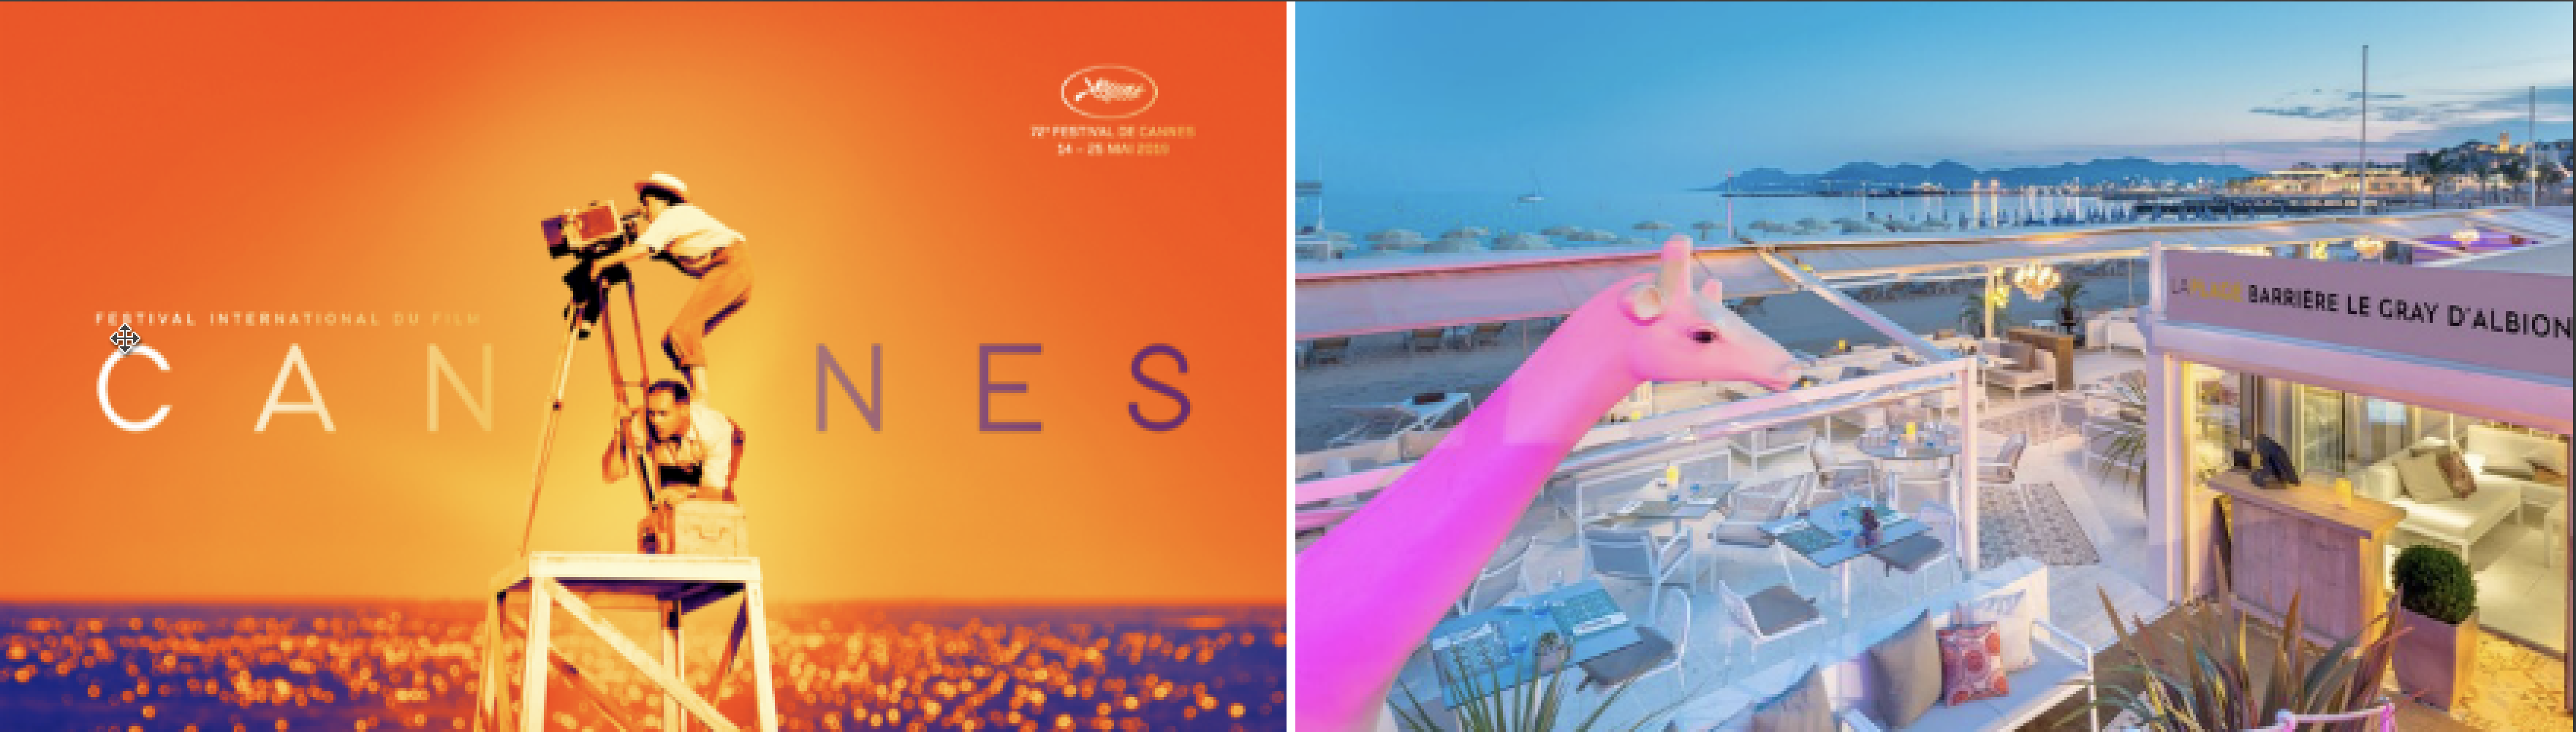 May 2019 – Festive Club Lunch in Cannes during the 72nd International Film Festival